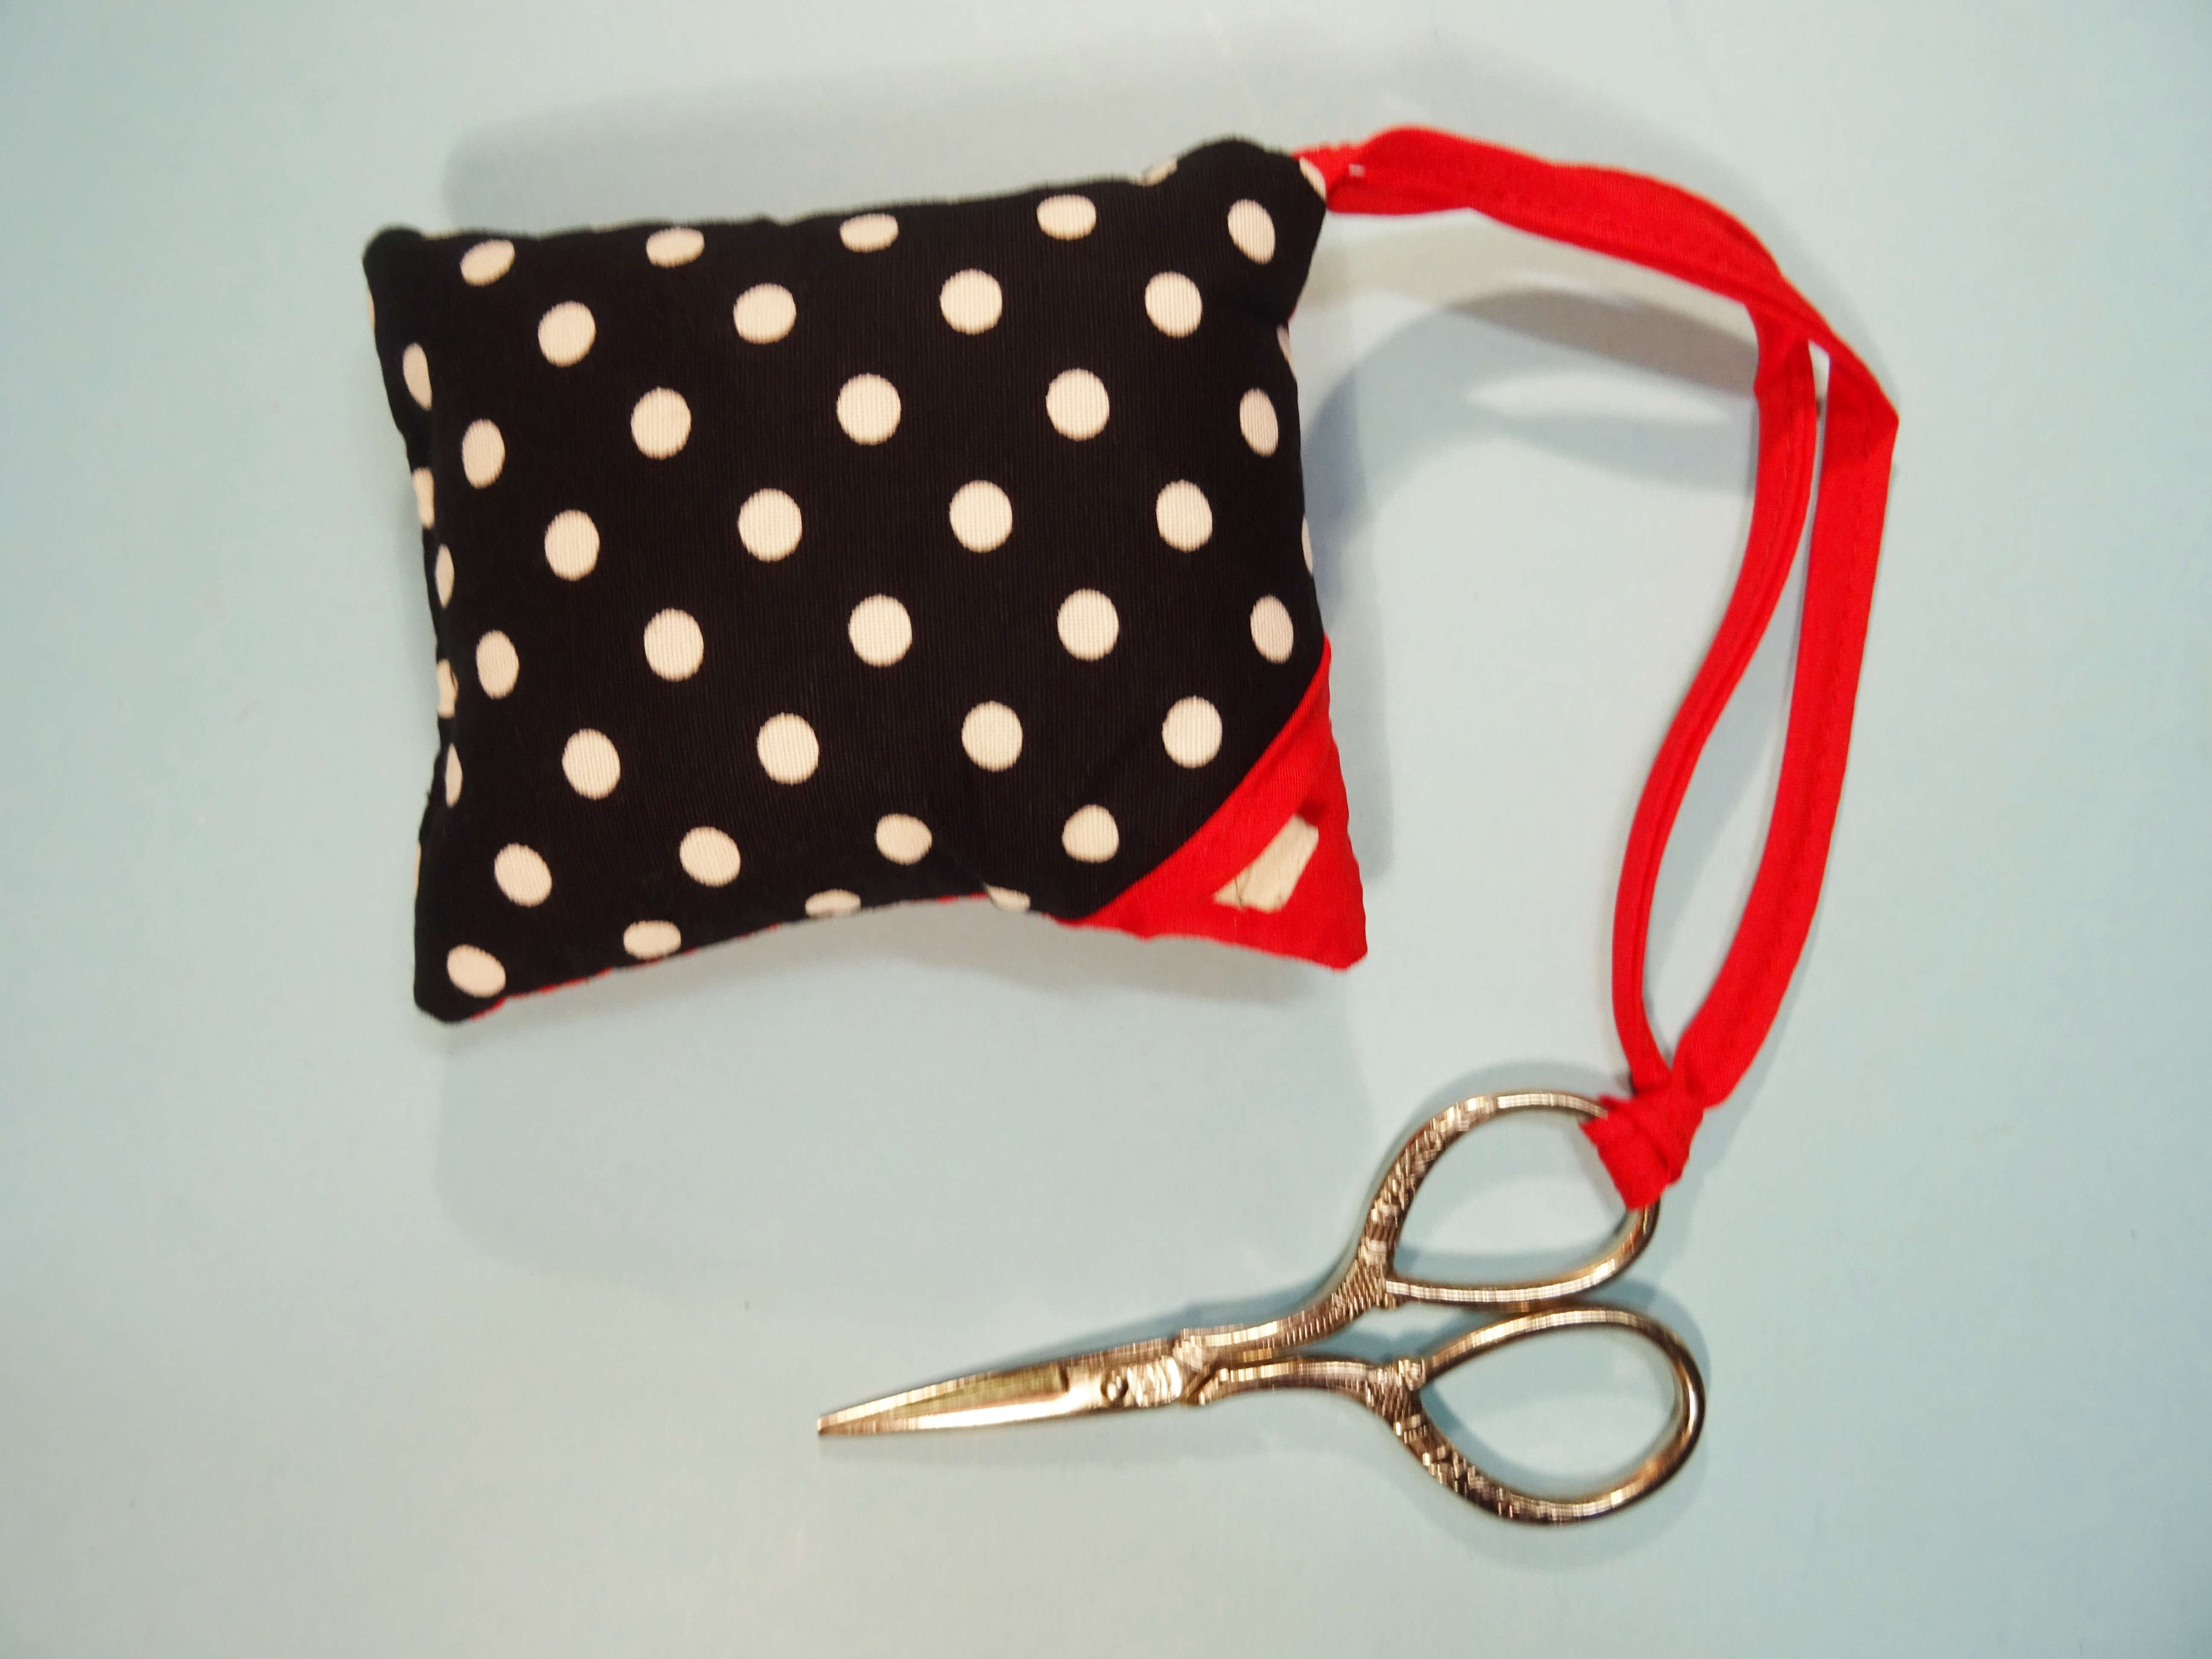 Pin Cushion Polka Dots Black White With Attached Scissors